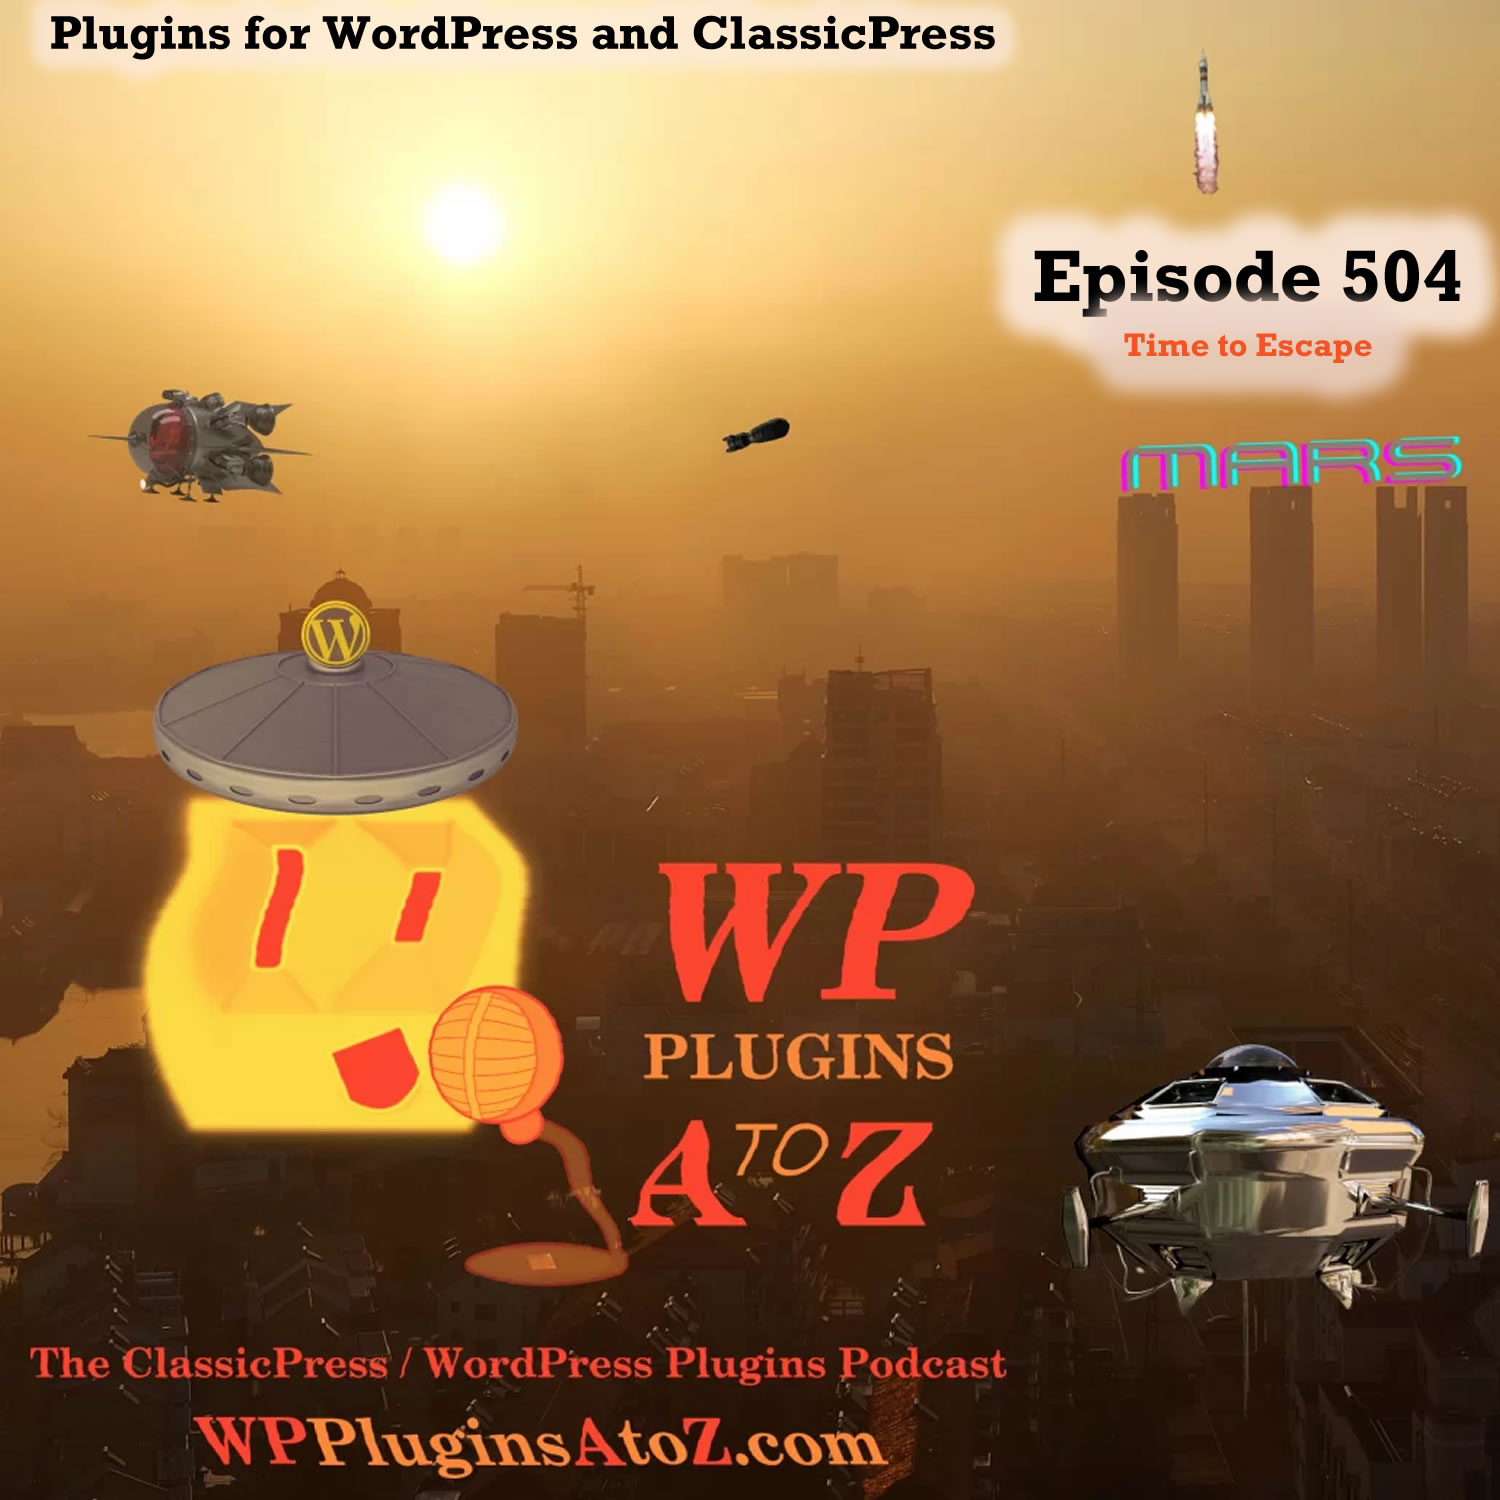 Time to Escape It's Episode 504 - We have plugins for Crypto, Duplication, Donations, Cookies, Videos....., and ClassicPress Options. It's all coming up on WordPress Plugins A-Z! Cookielay, Switch Video Quality, Embed Plus for YouTube – Gallery, Channel, Playlist, Live Stream, WPSiteSync for Content, Philantro – Donations and Donor Management Plugin, Cryptocurrency Donation Box – Bitcoin & Crypto Donations and ClassicPress options on Episode 504